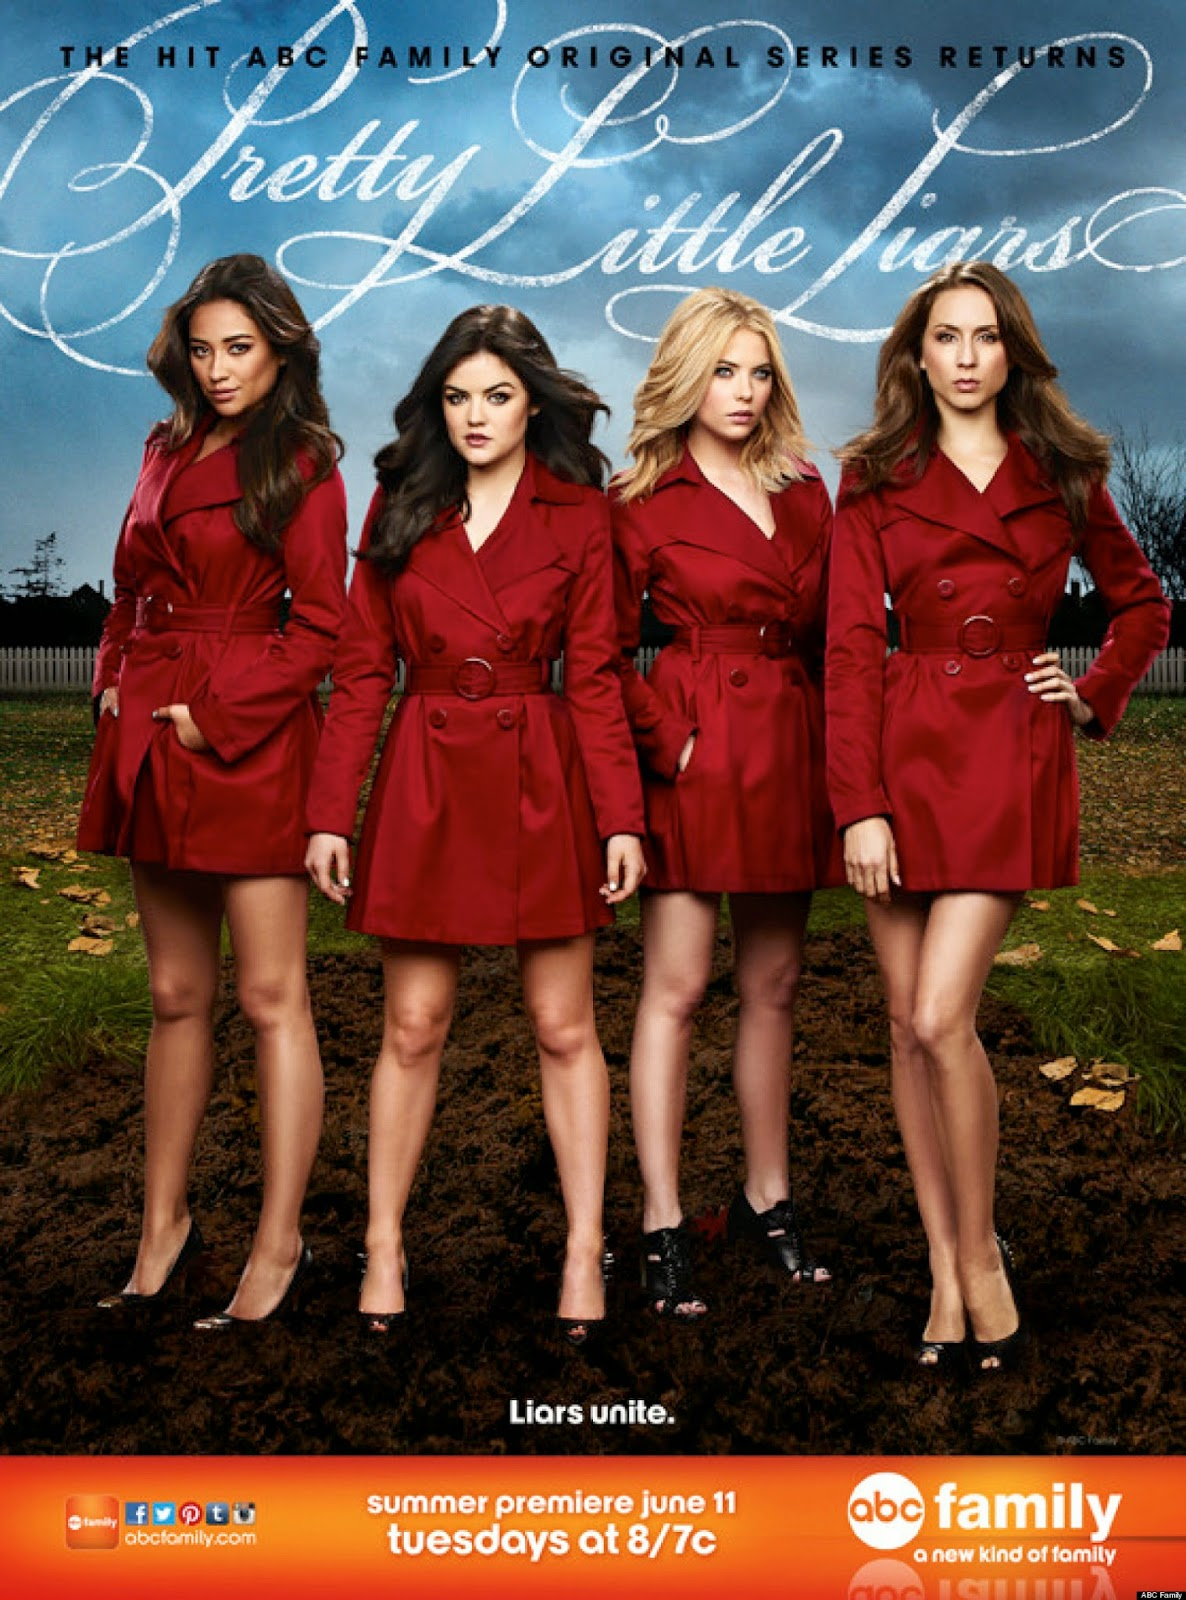 Pretty little liars quot recap 6 01 escape from the dollhouse page 7 -  A Has Always Had Fun Playing With Aria Emily Hanna Spencer But Now They Have The Biggest Game To Date In Store For The Girls